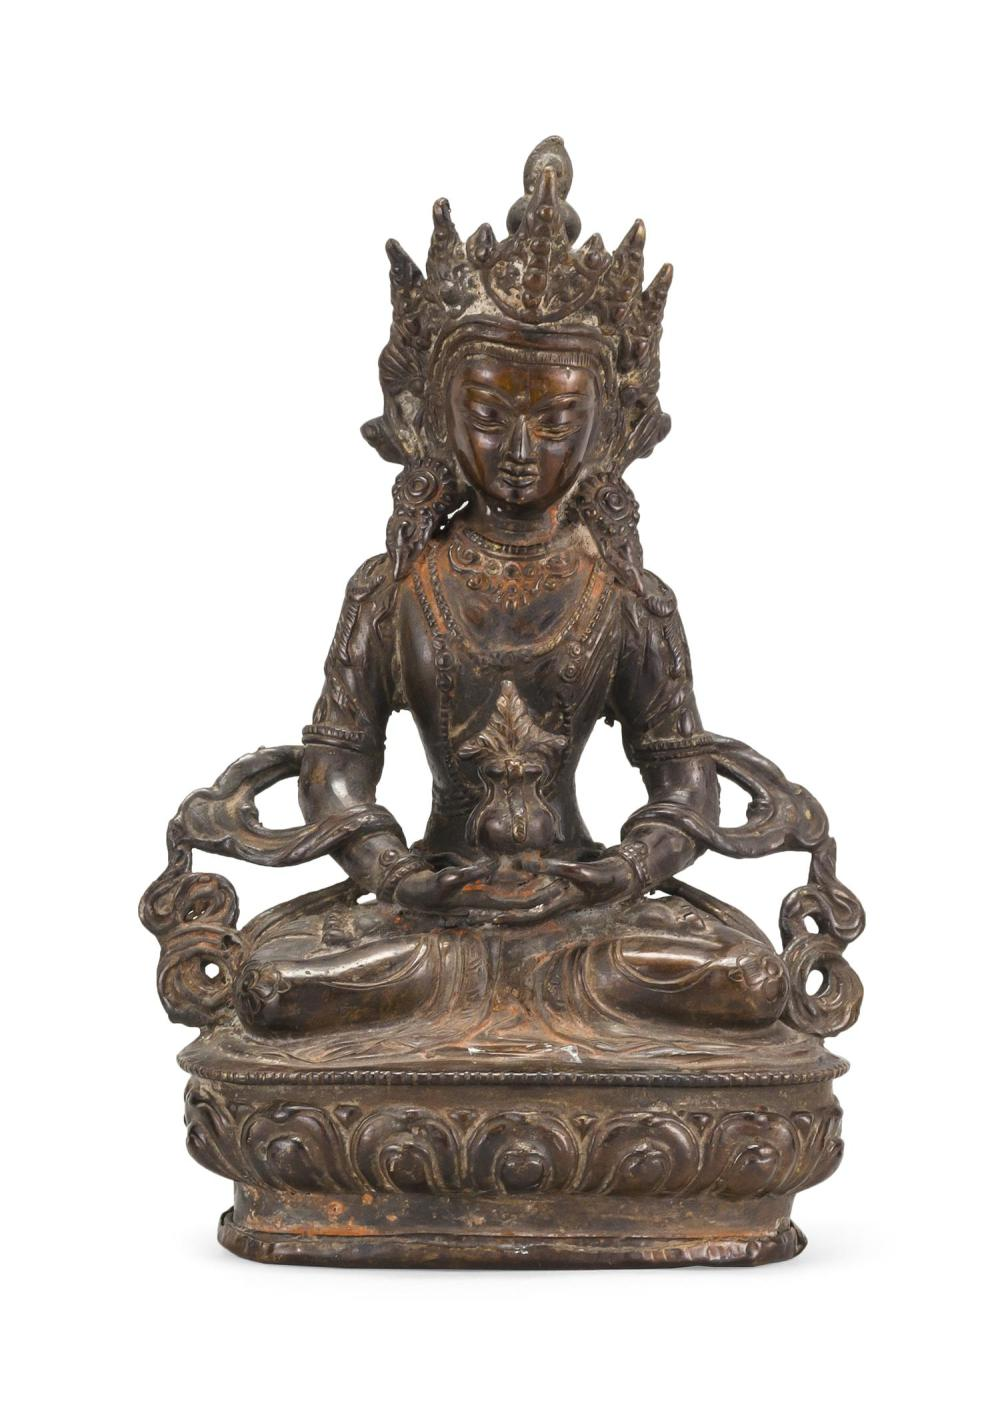 "NEPALESE BRONZE FIGURE OF BUDDHA Seated on a lotus throne and holding a censer. Height 8.5""."